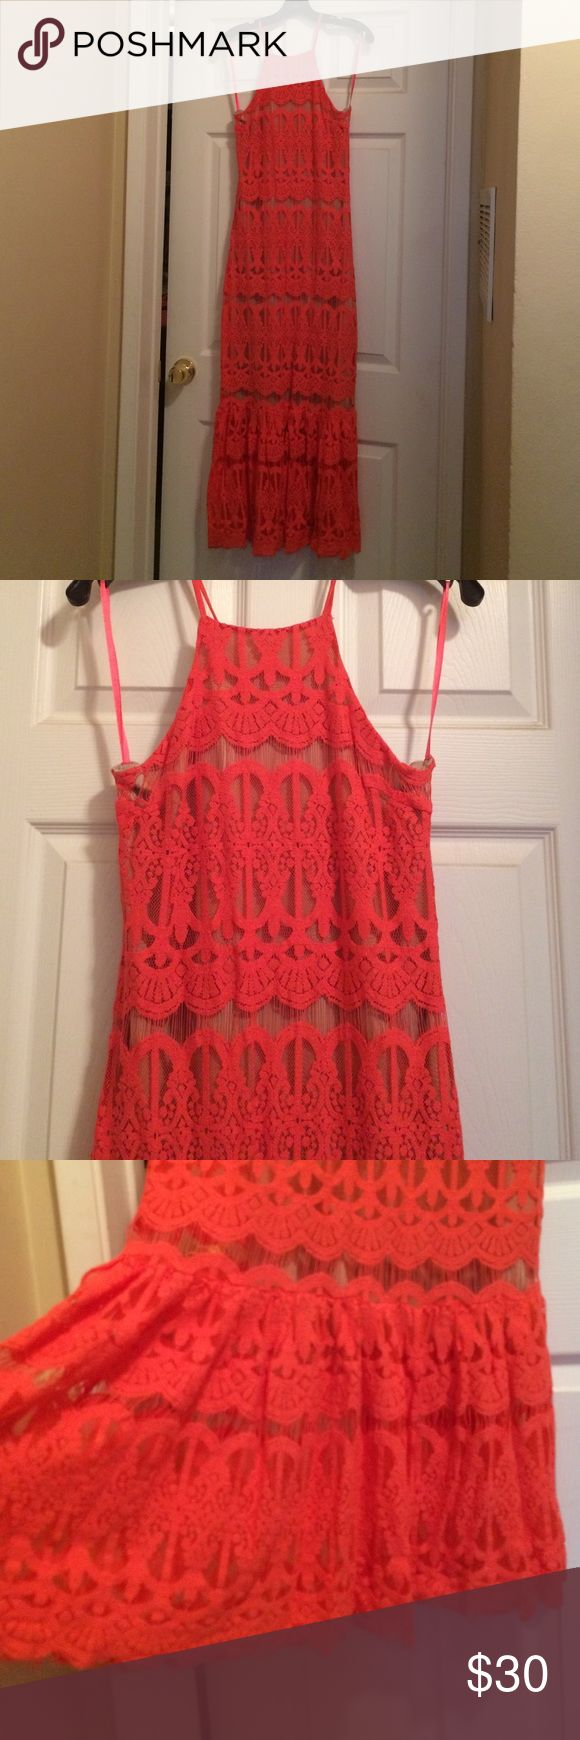 Coral lace dress Coral lace dress/ floor length/ zipper on the back/ two layers/ size small/ worn once Dresses Maxi